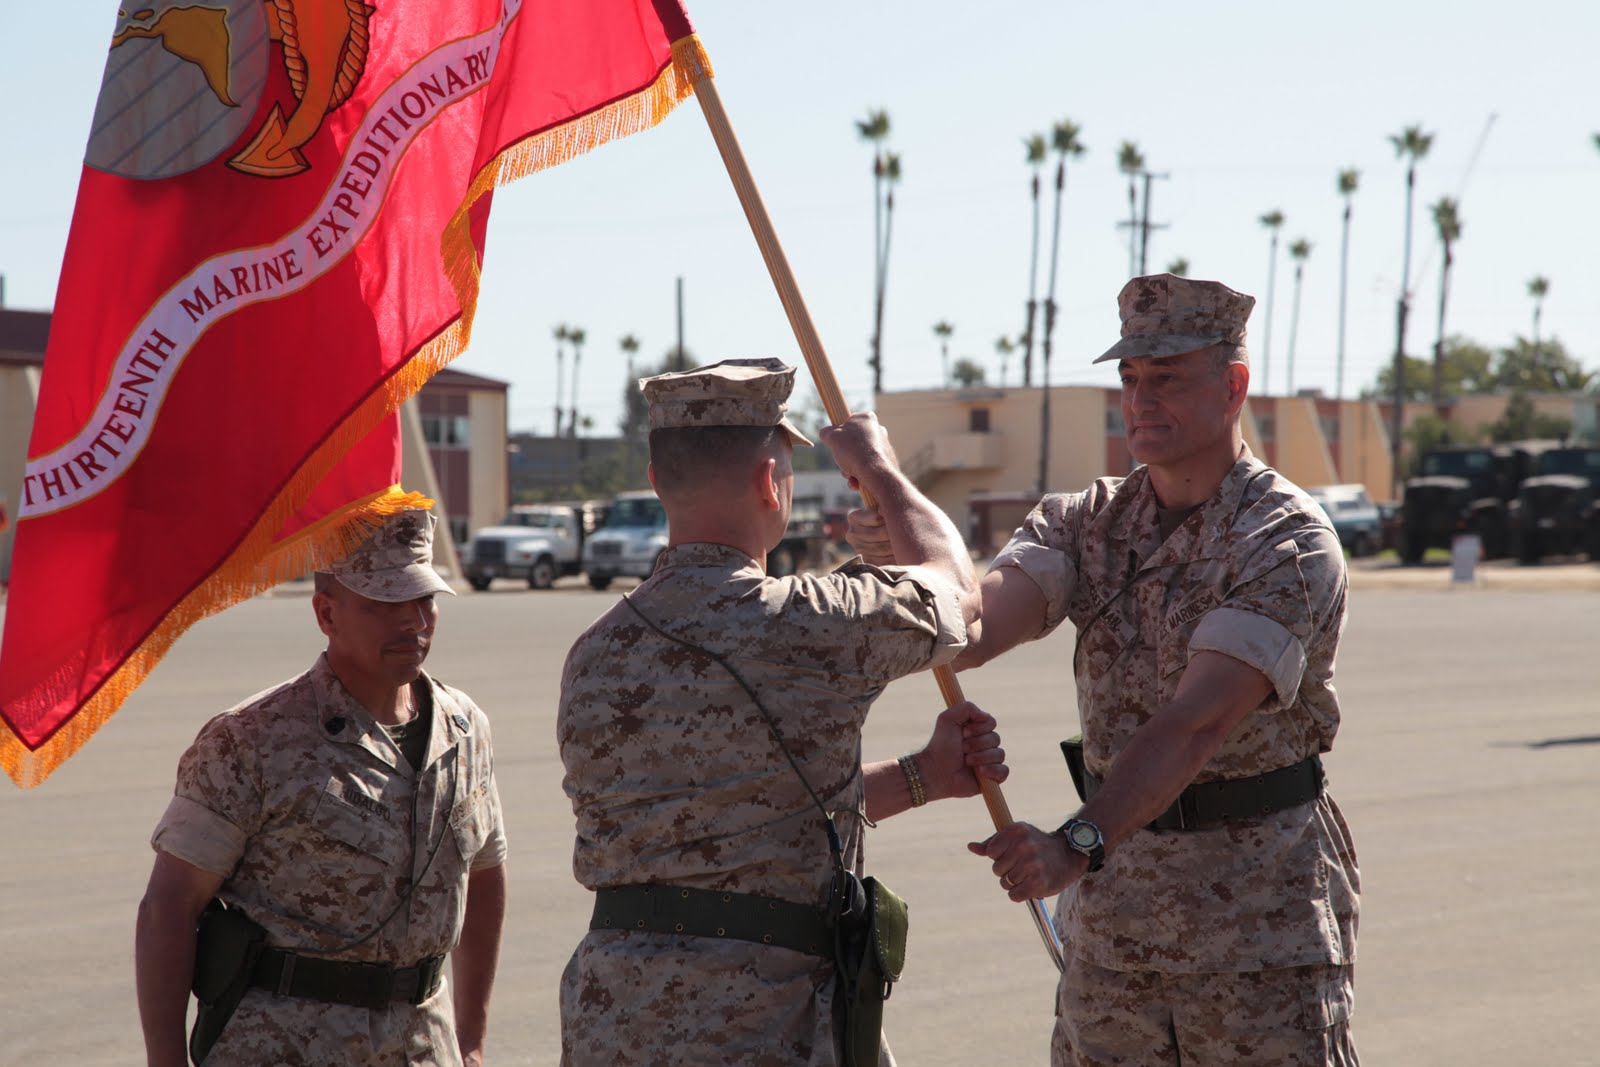 marine corps customs courtesies essay Free essay: customs and courtesies as soldiers marine customs are simply desirable courses of action sanctioned by tradition and usage in the marine corps.